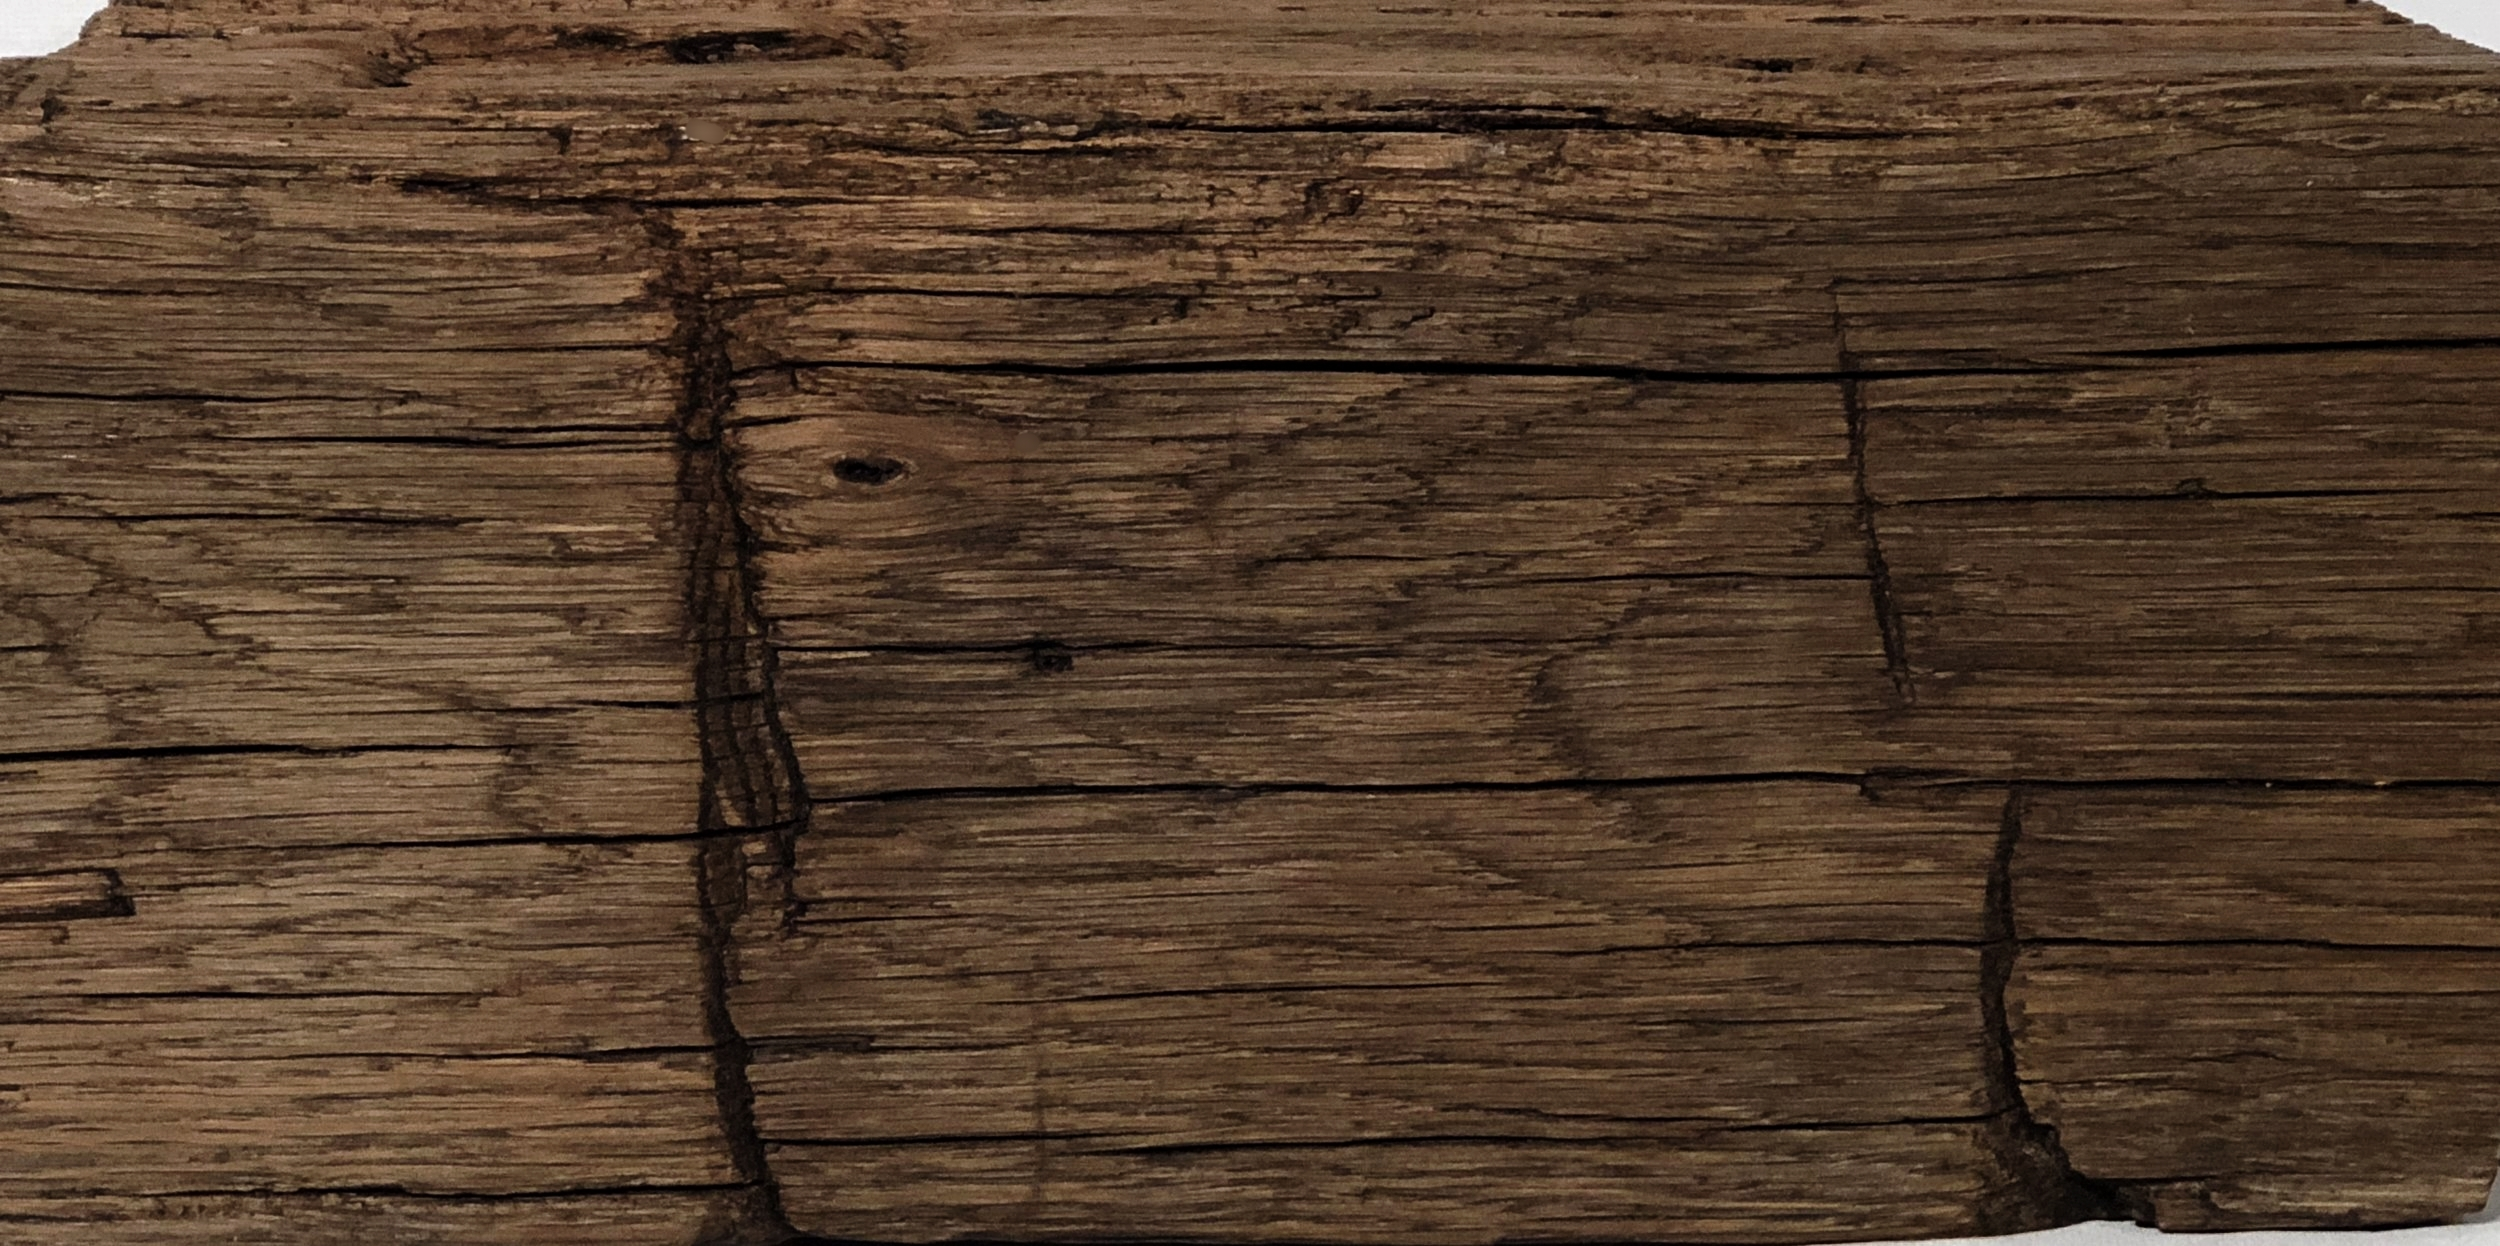 antique hand hewn beam texture - color: LIGHT BROWN